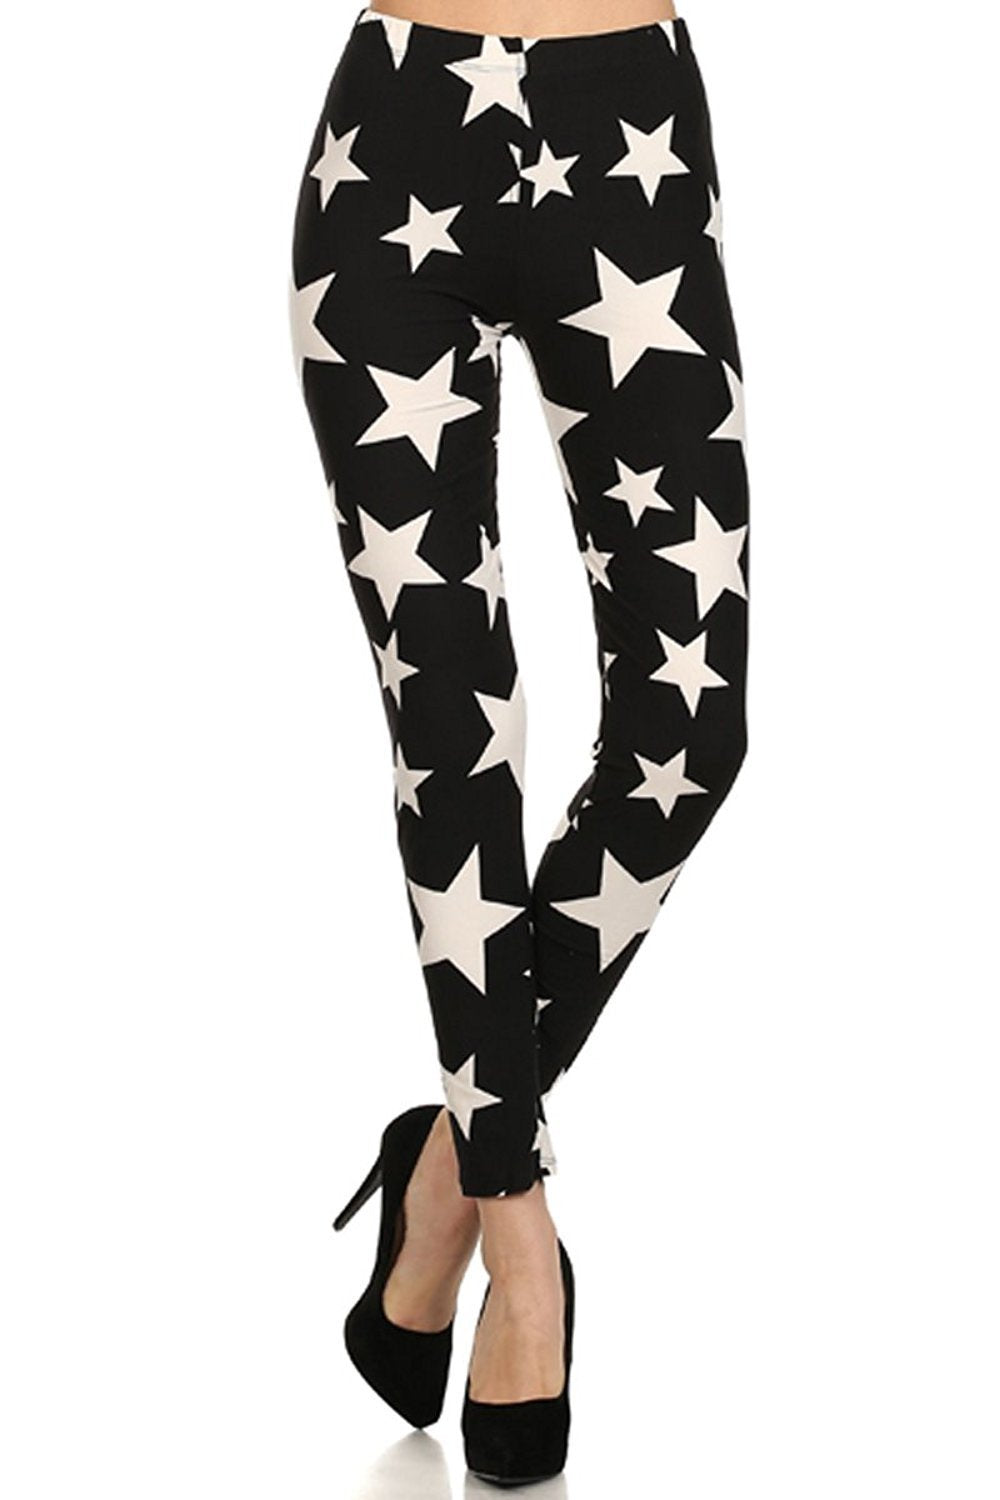 Stars Buttery Soft Leggings